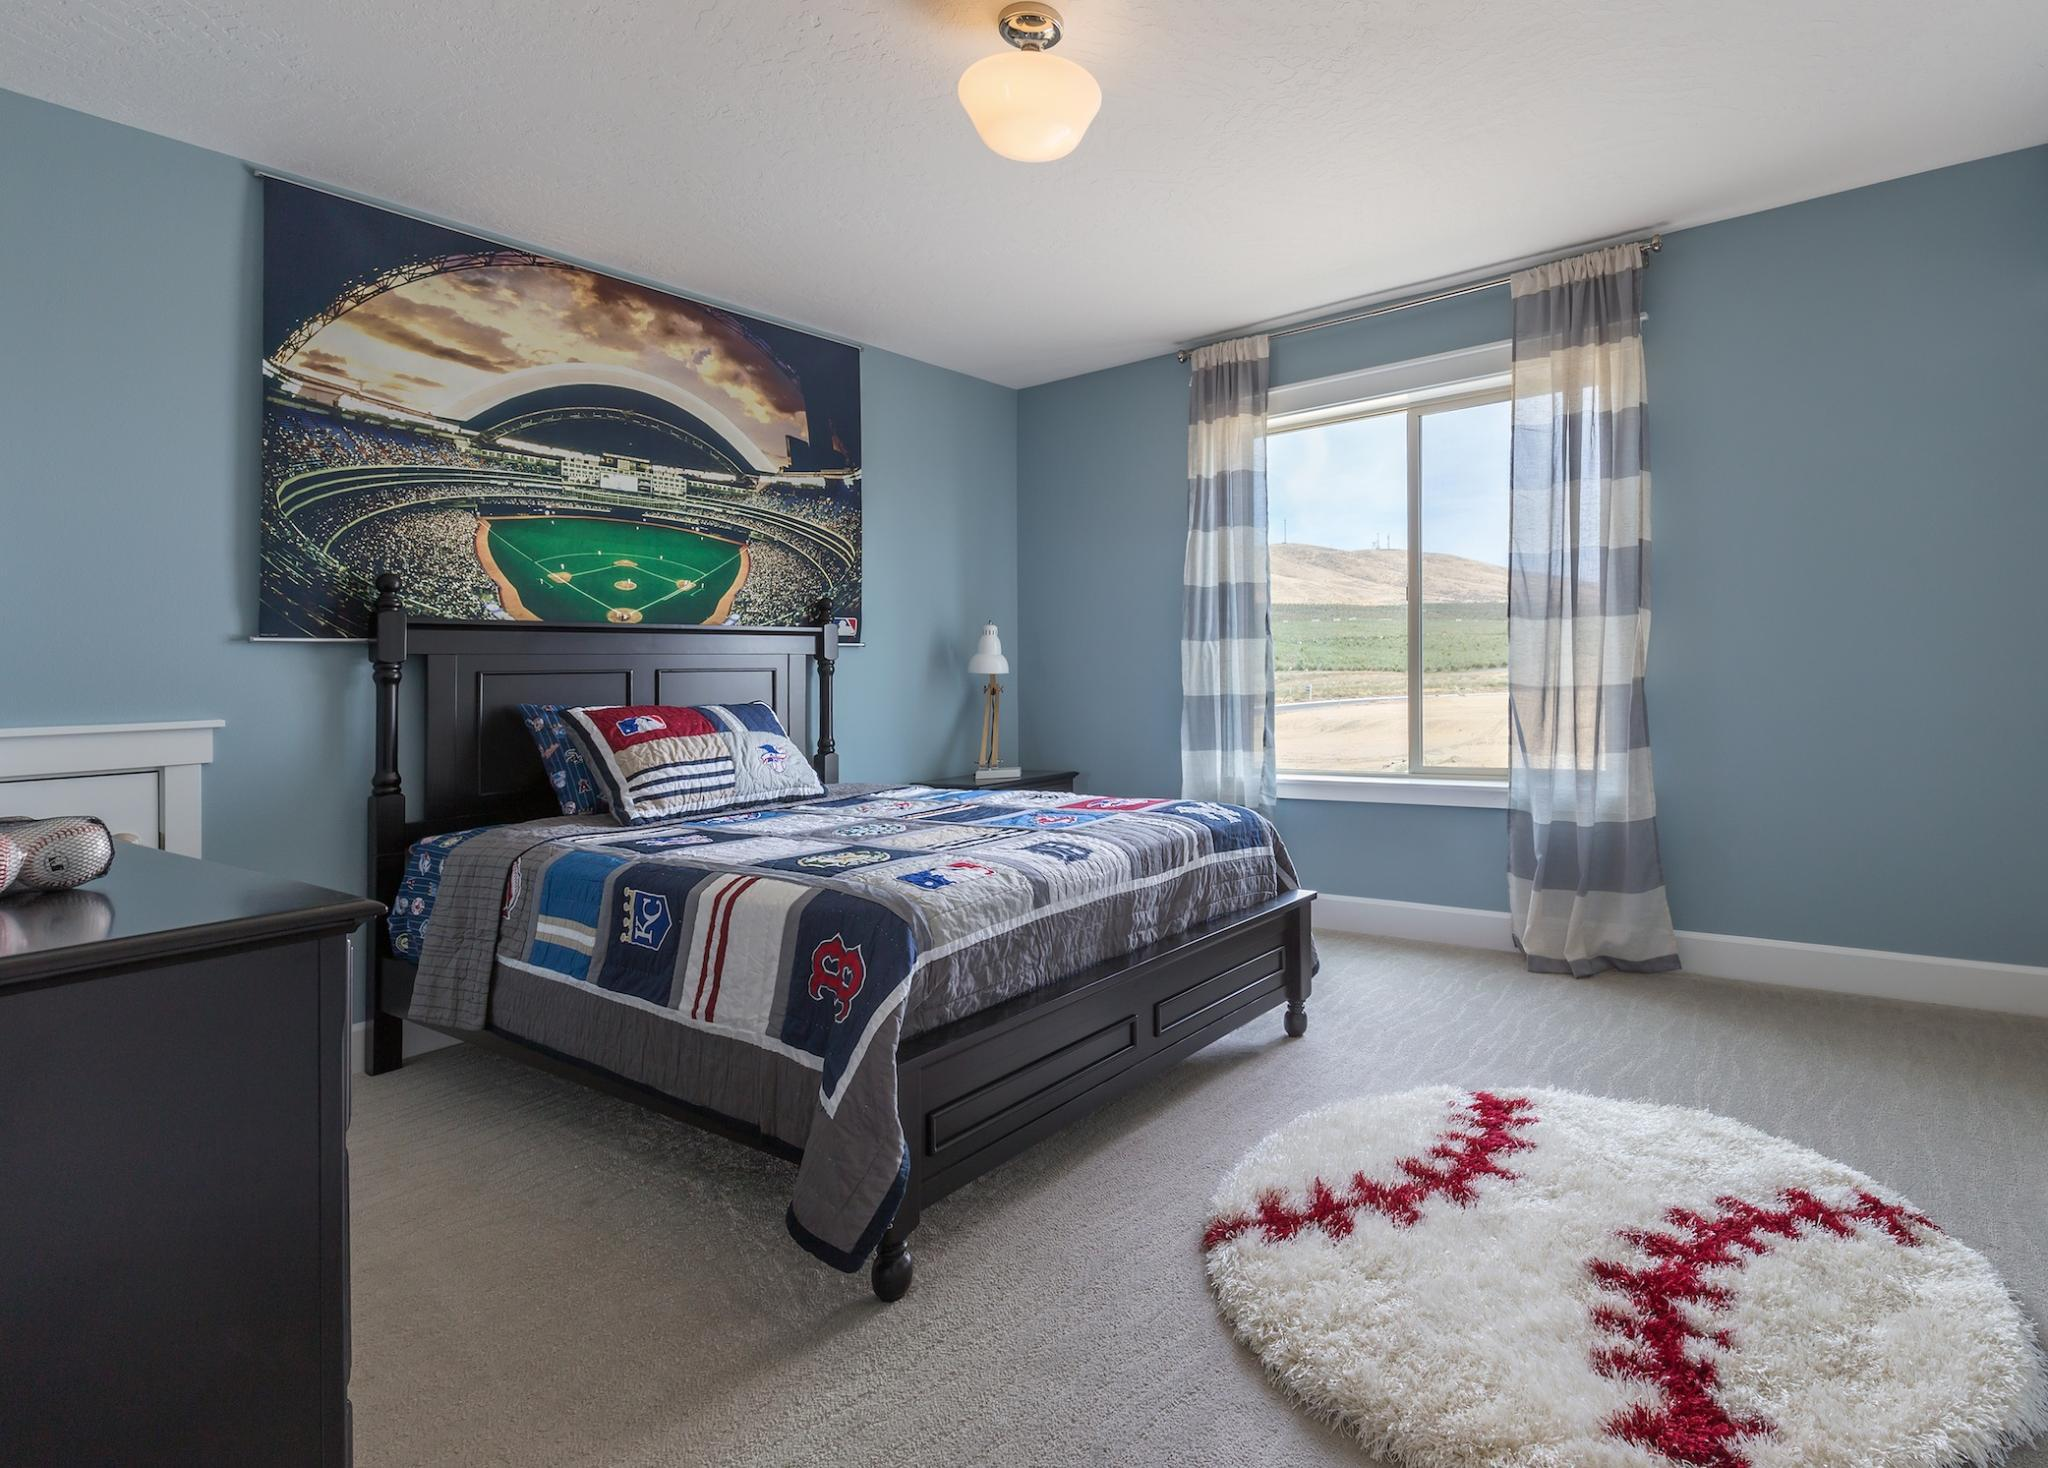 Bedroom featured in the Ashford By New Tradition Homes in Richland, WA